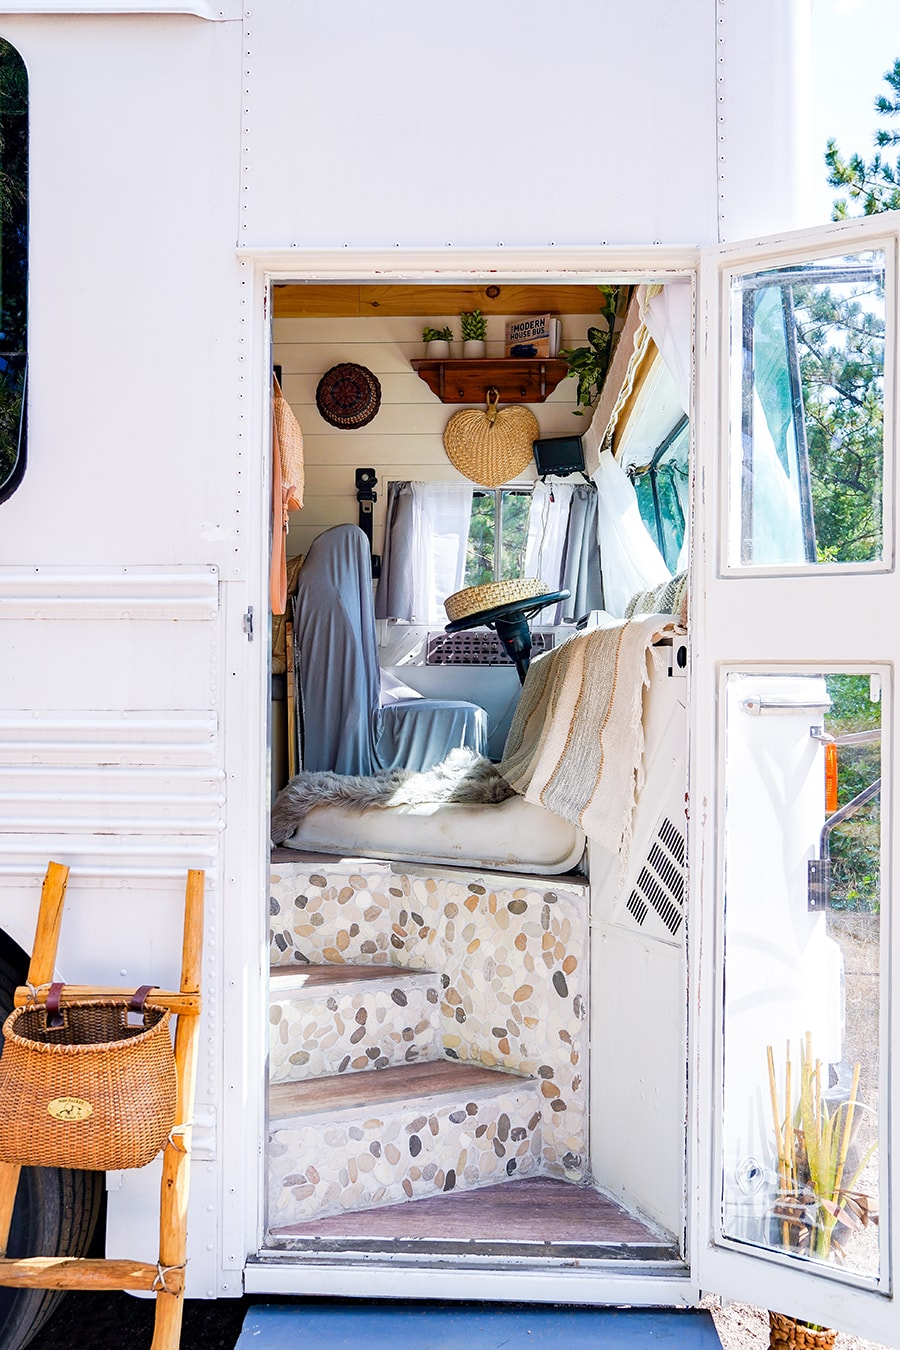 school bus converted into tiny home on wheels @happyhomebodies